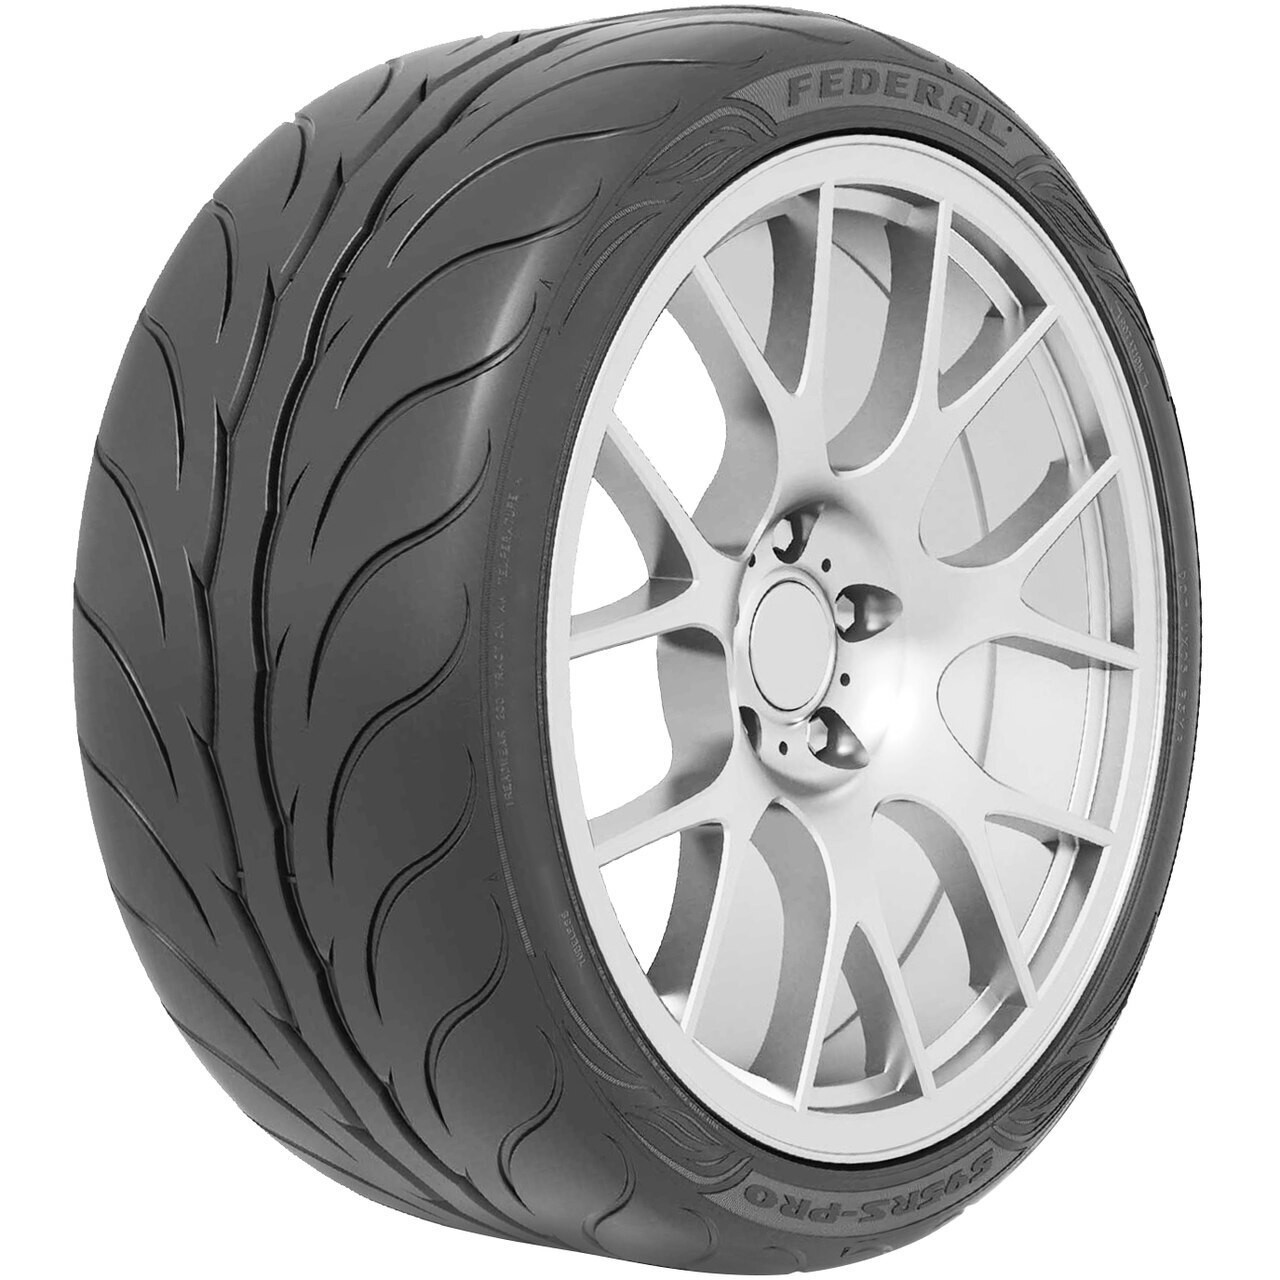 235/35ZR19 FEDERAL 595RS-PRO 91Y XL 200AAA***RACING TIRE***